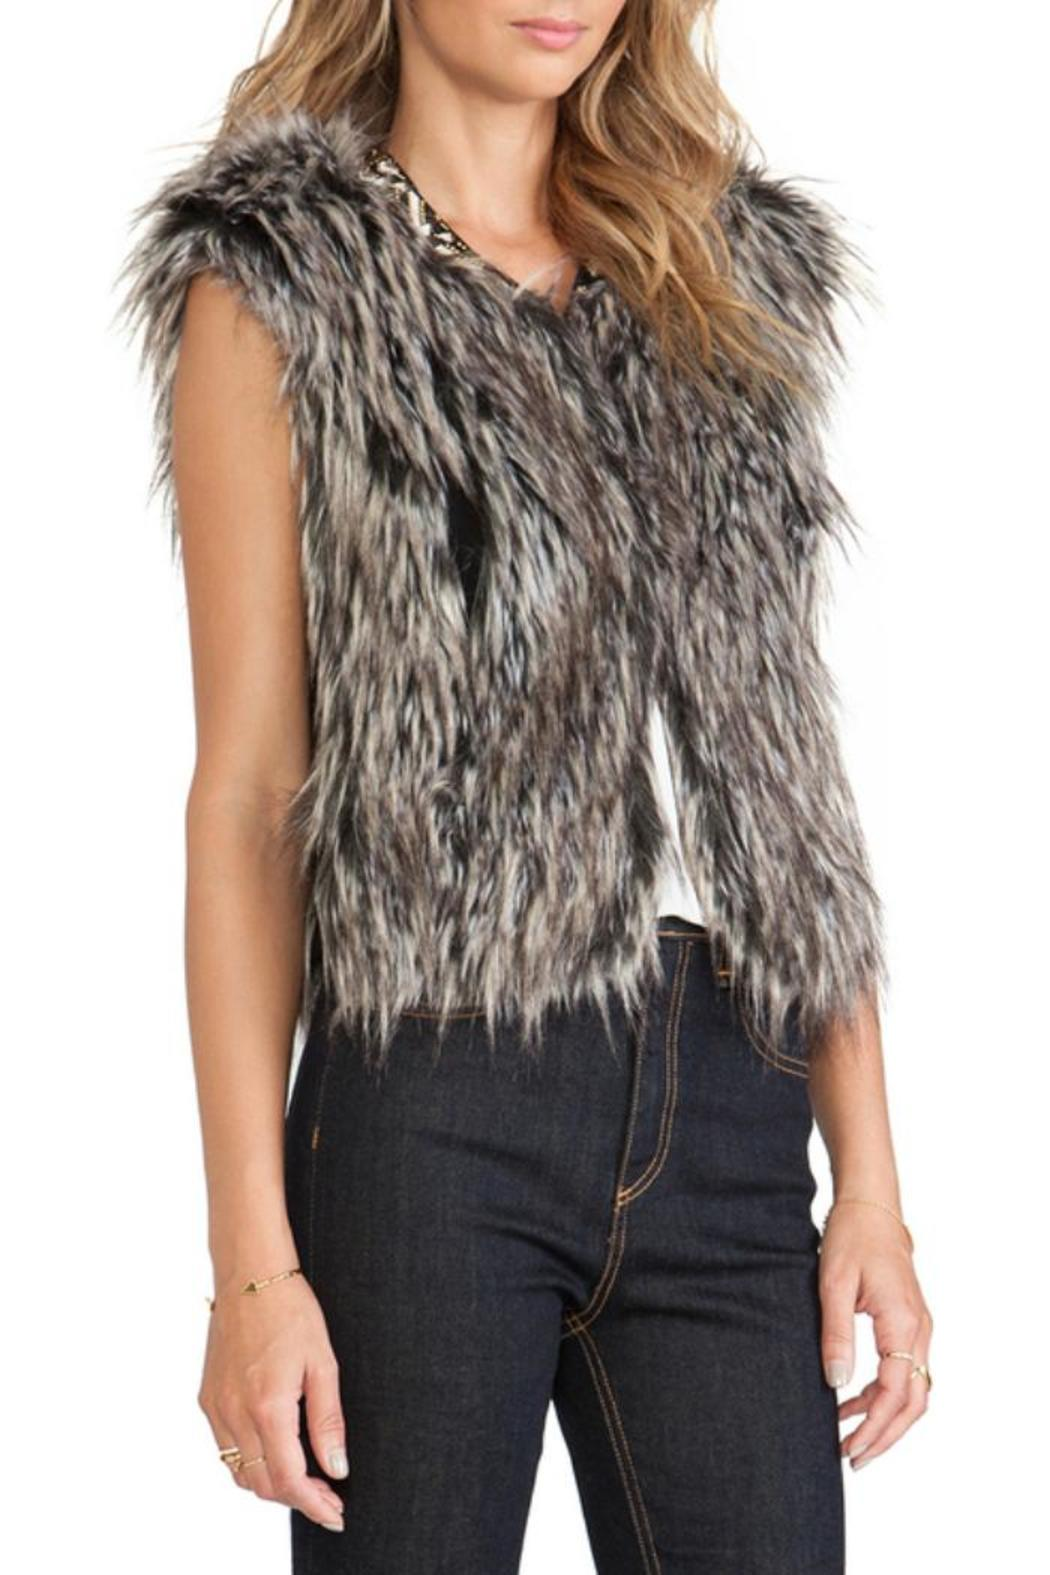 Twelfth Street by Cynthia Vincent Faux Fur Vest - Front Full Image